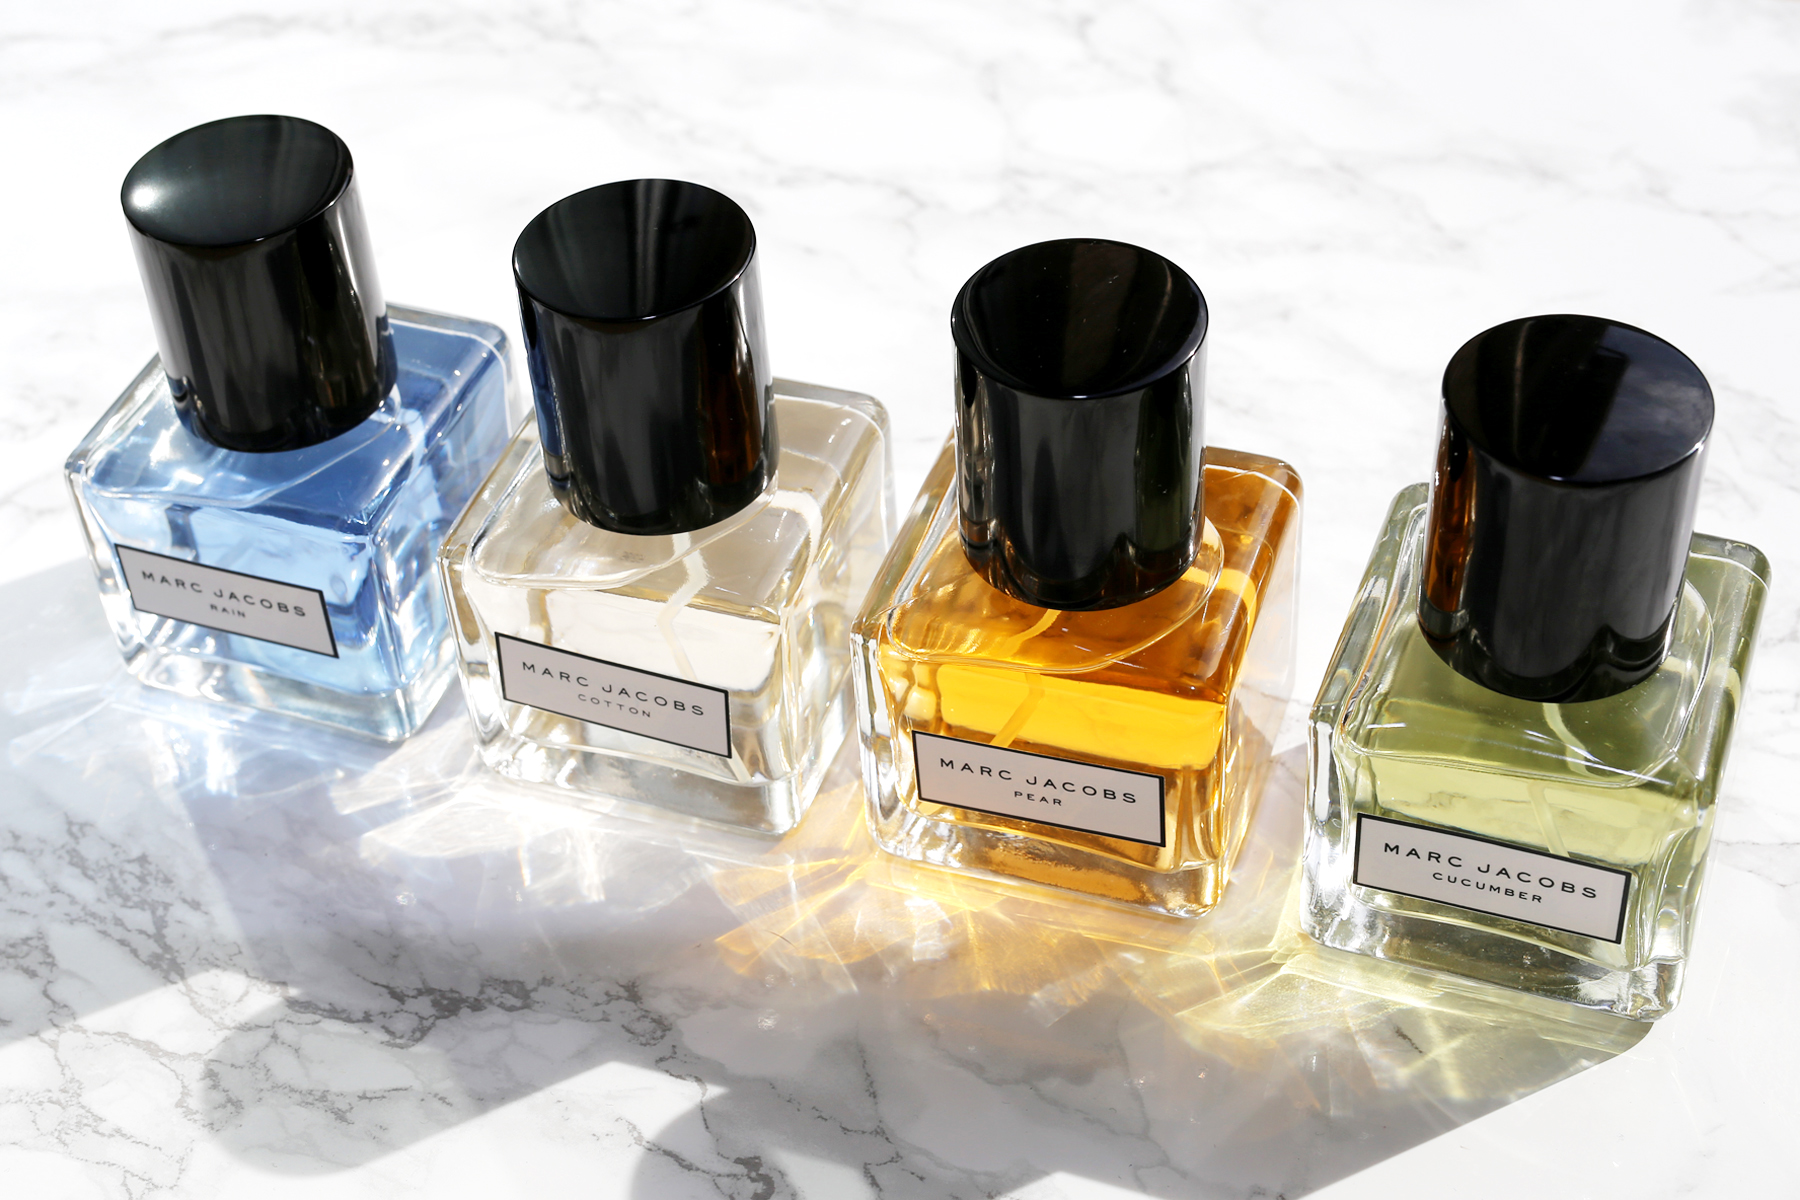 Marc Jacobs Pear, Cucumber, Rain and Cotton perfume collection_1830.JPG